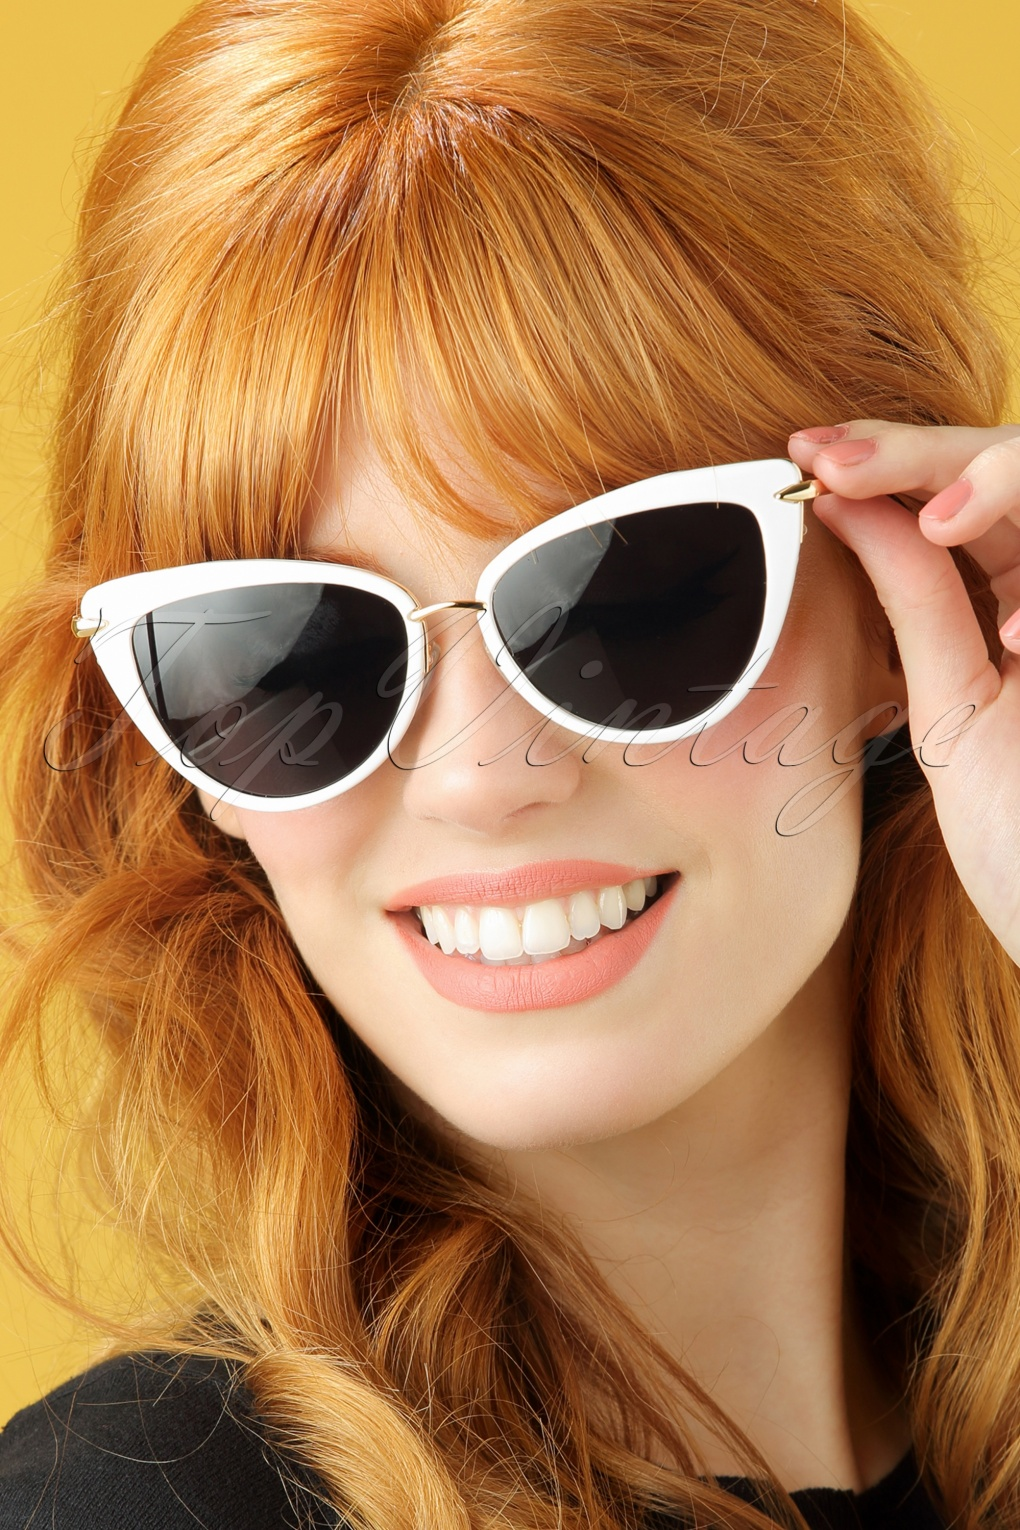 60s Mod Clothing Outfit Ideas 50s Dita Cat Eye Sunglasses in White and Gold £16.28 AT vintagedancer.com